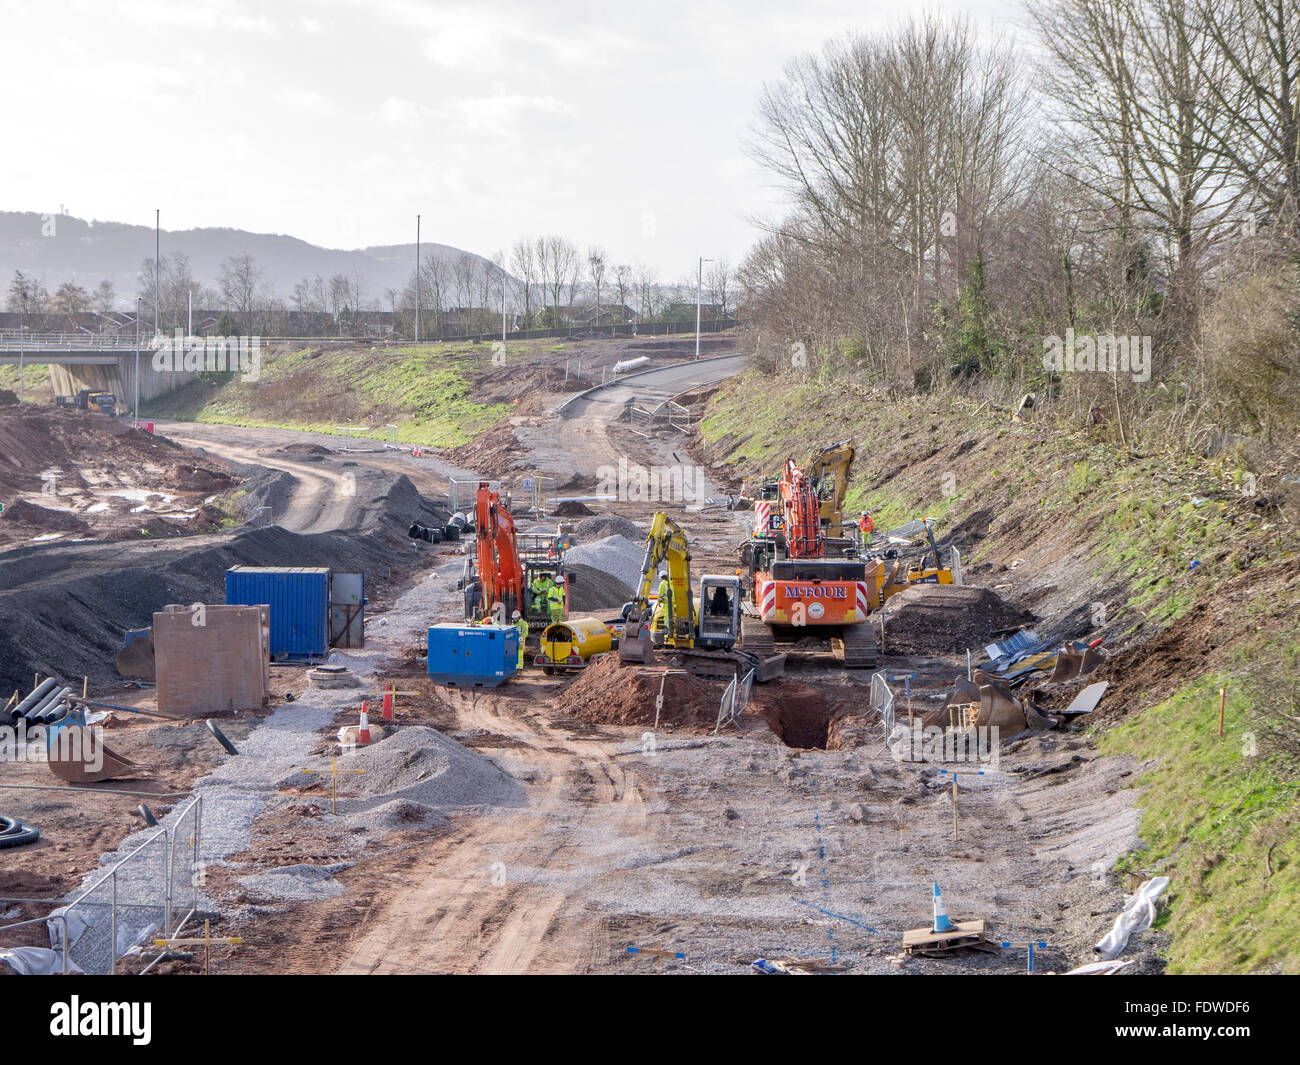 Diggers moving soil to make way for a new road layout - Stock Image